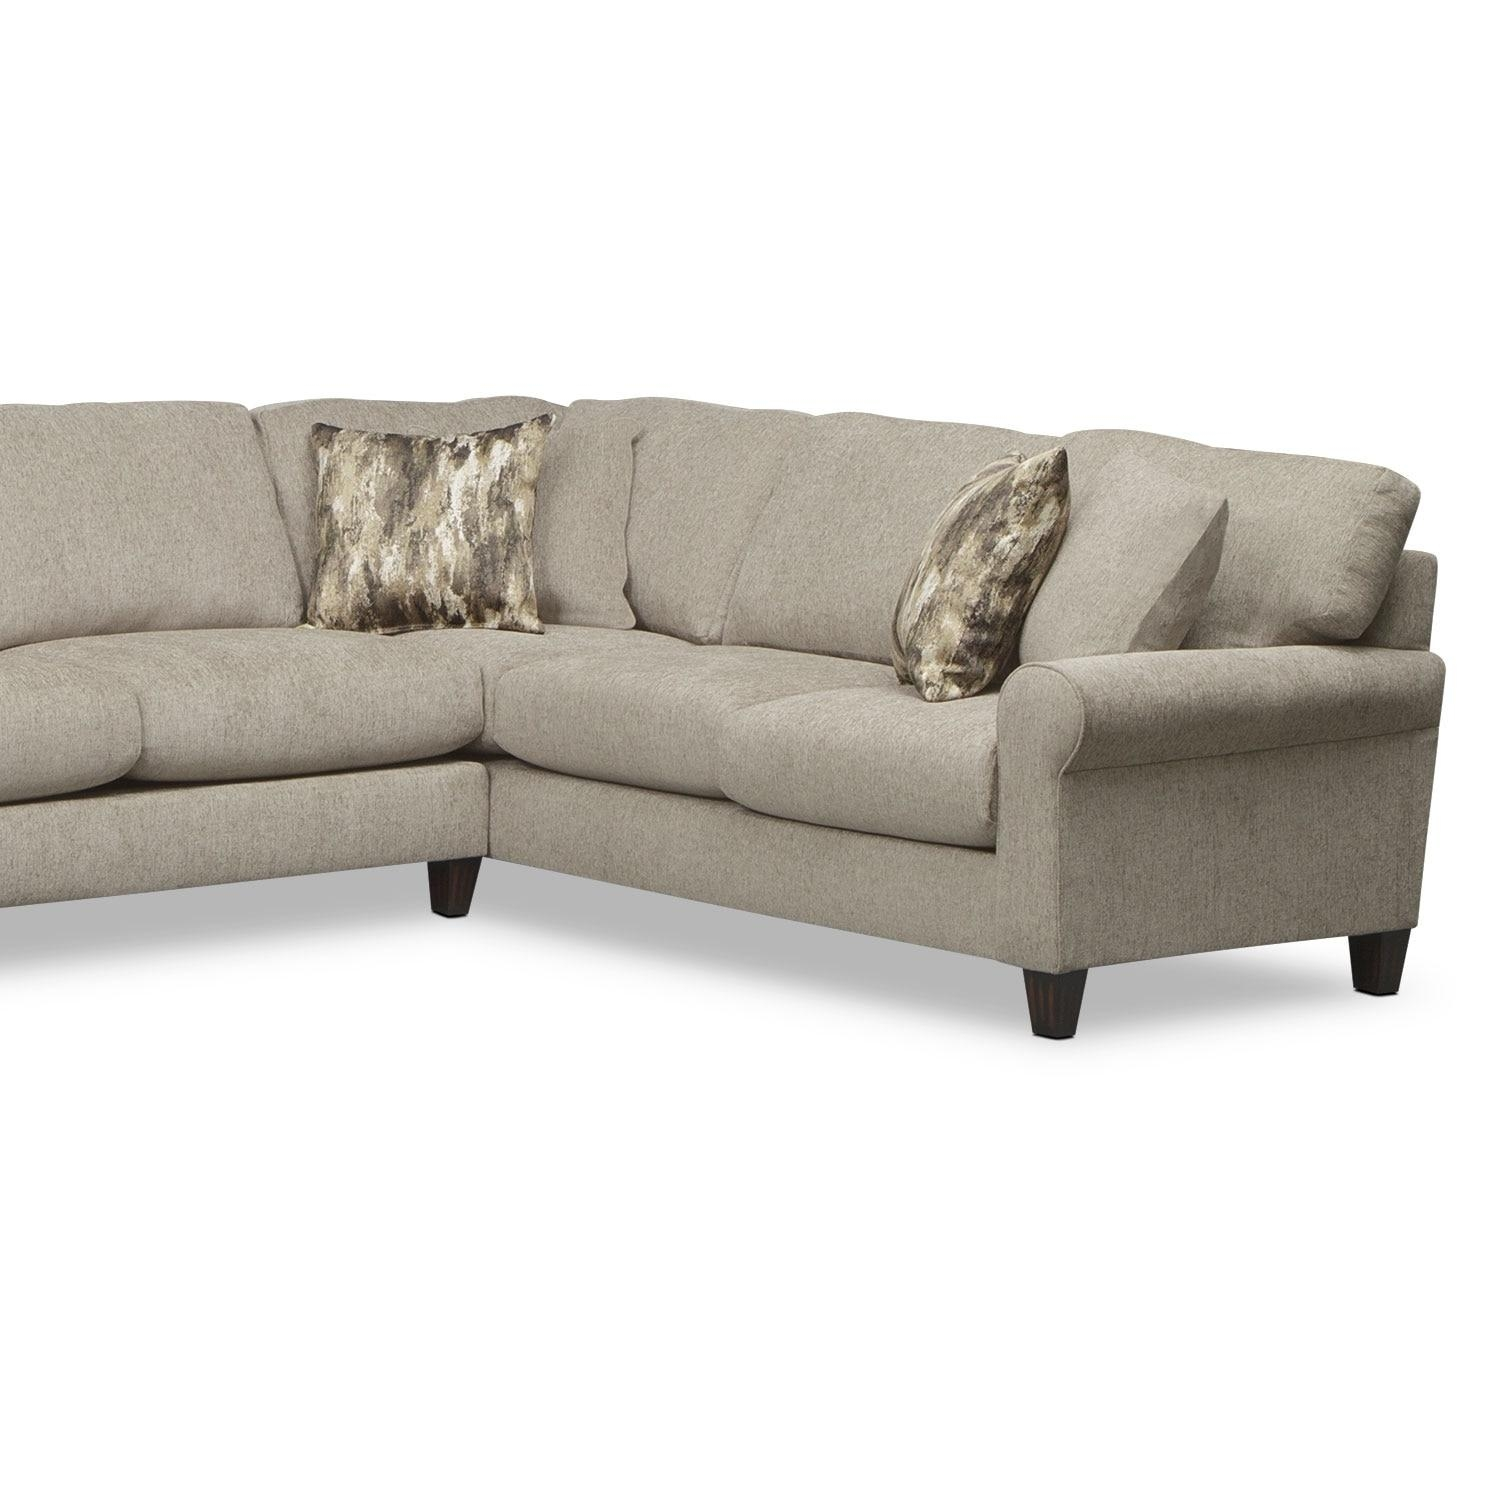 Karma 3 Piece Sectional With Left Facing Cuddler – Mink | Value In Cuddler Sectional Sofa (View 14 of 15)